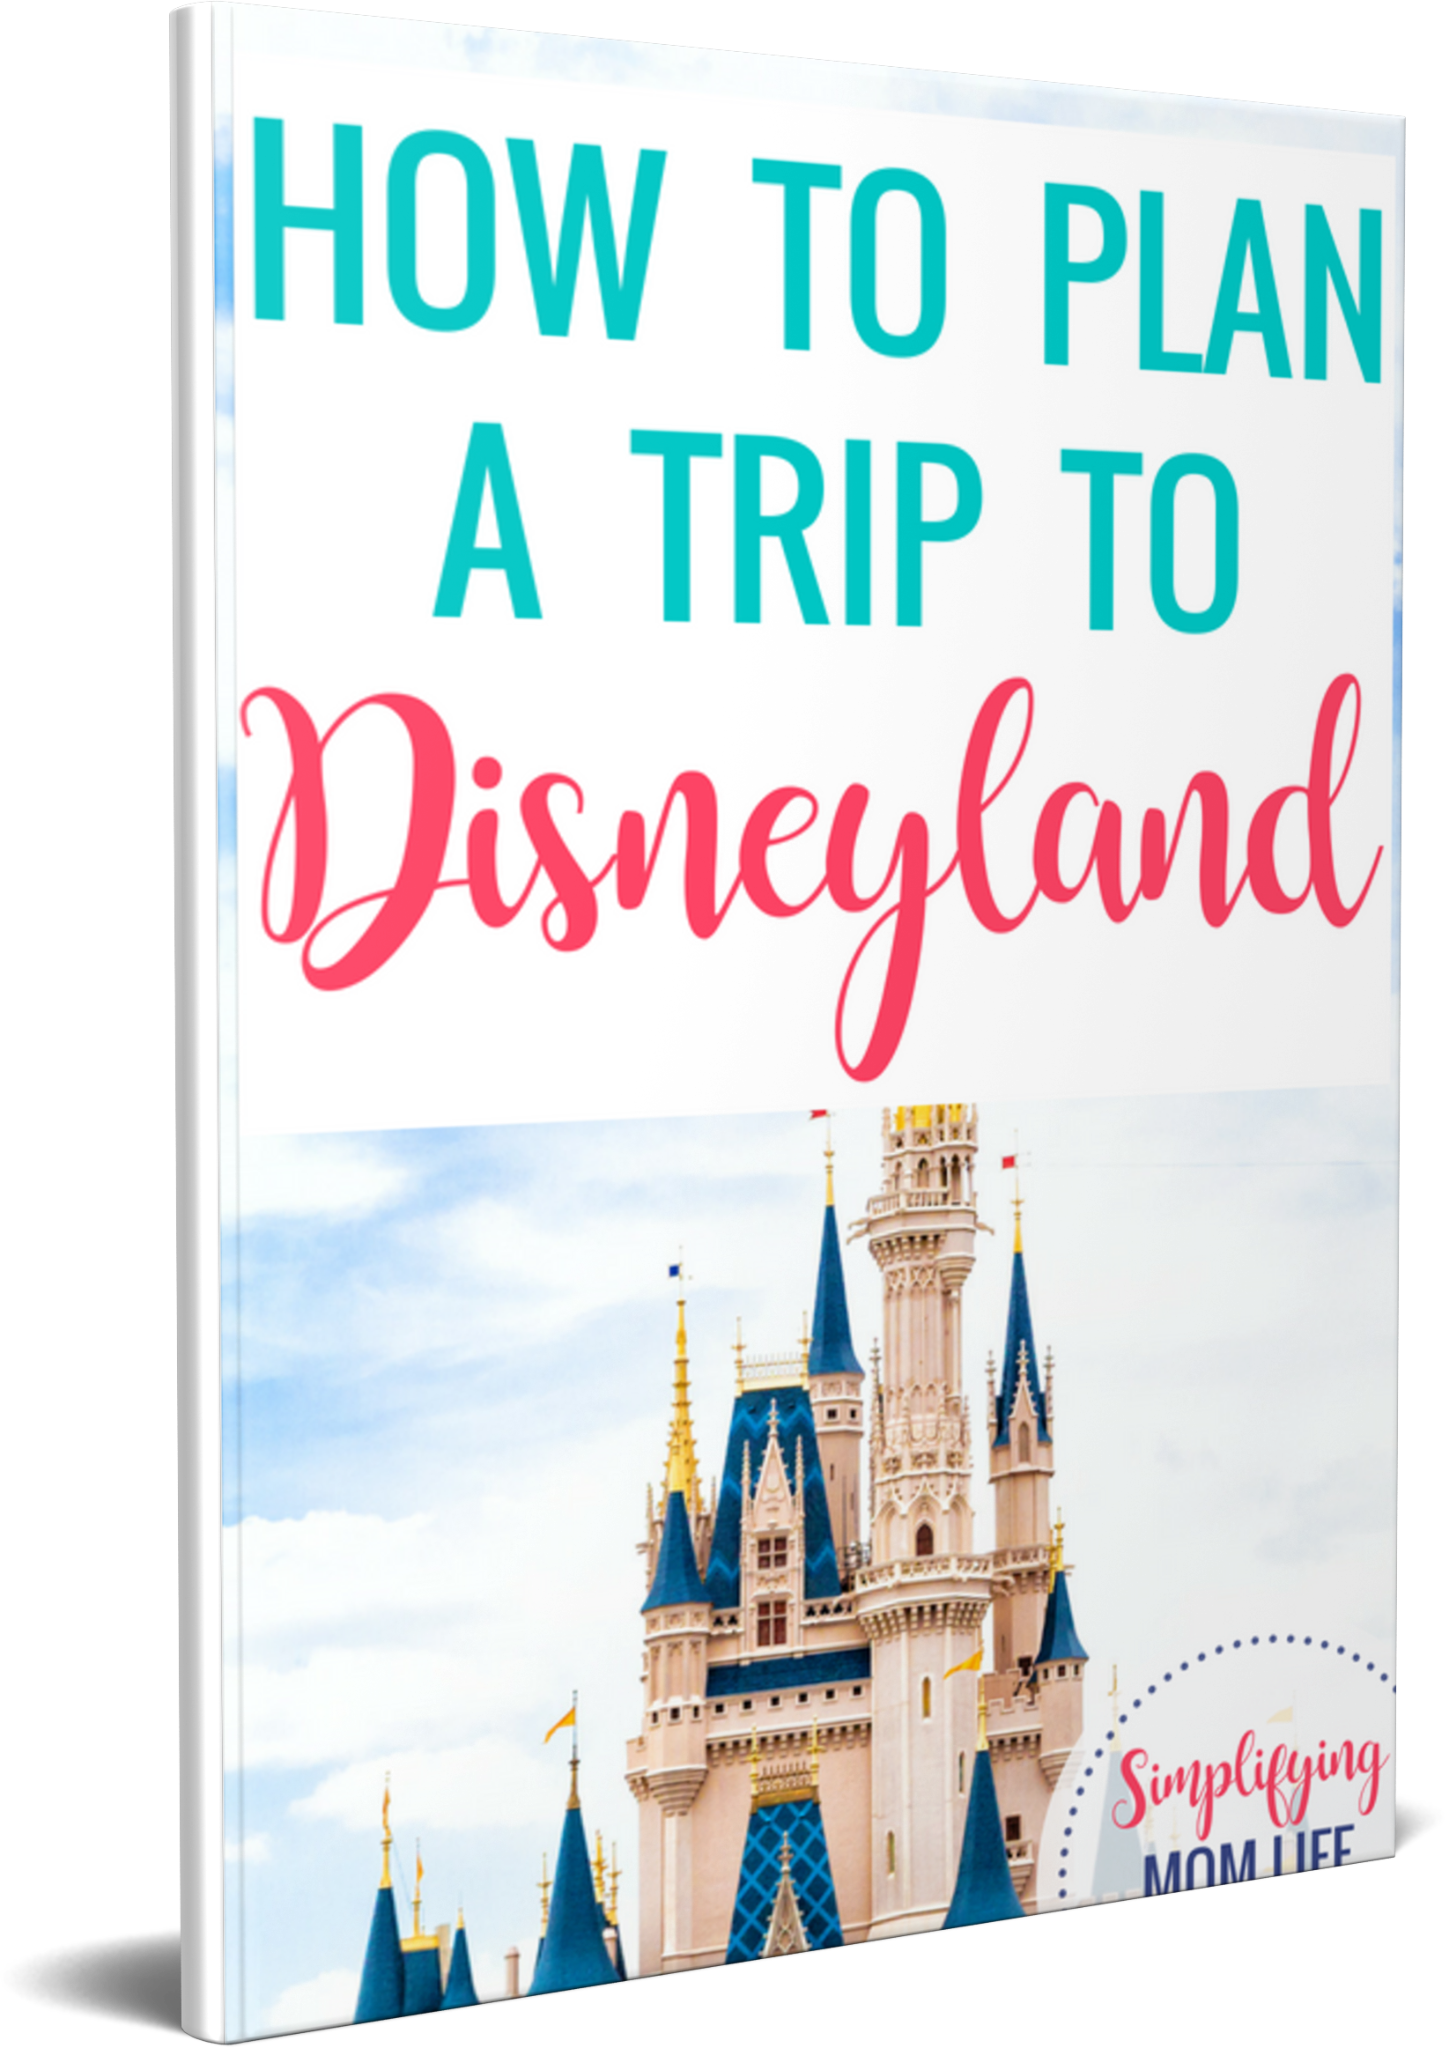 How to Plan a Trip to Disneyland Guide